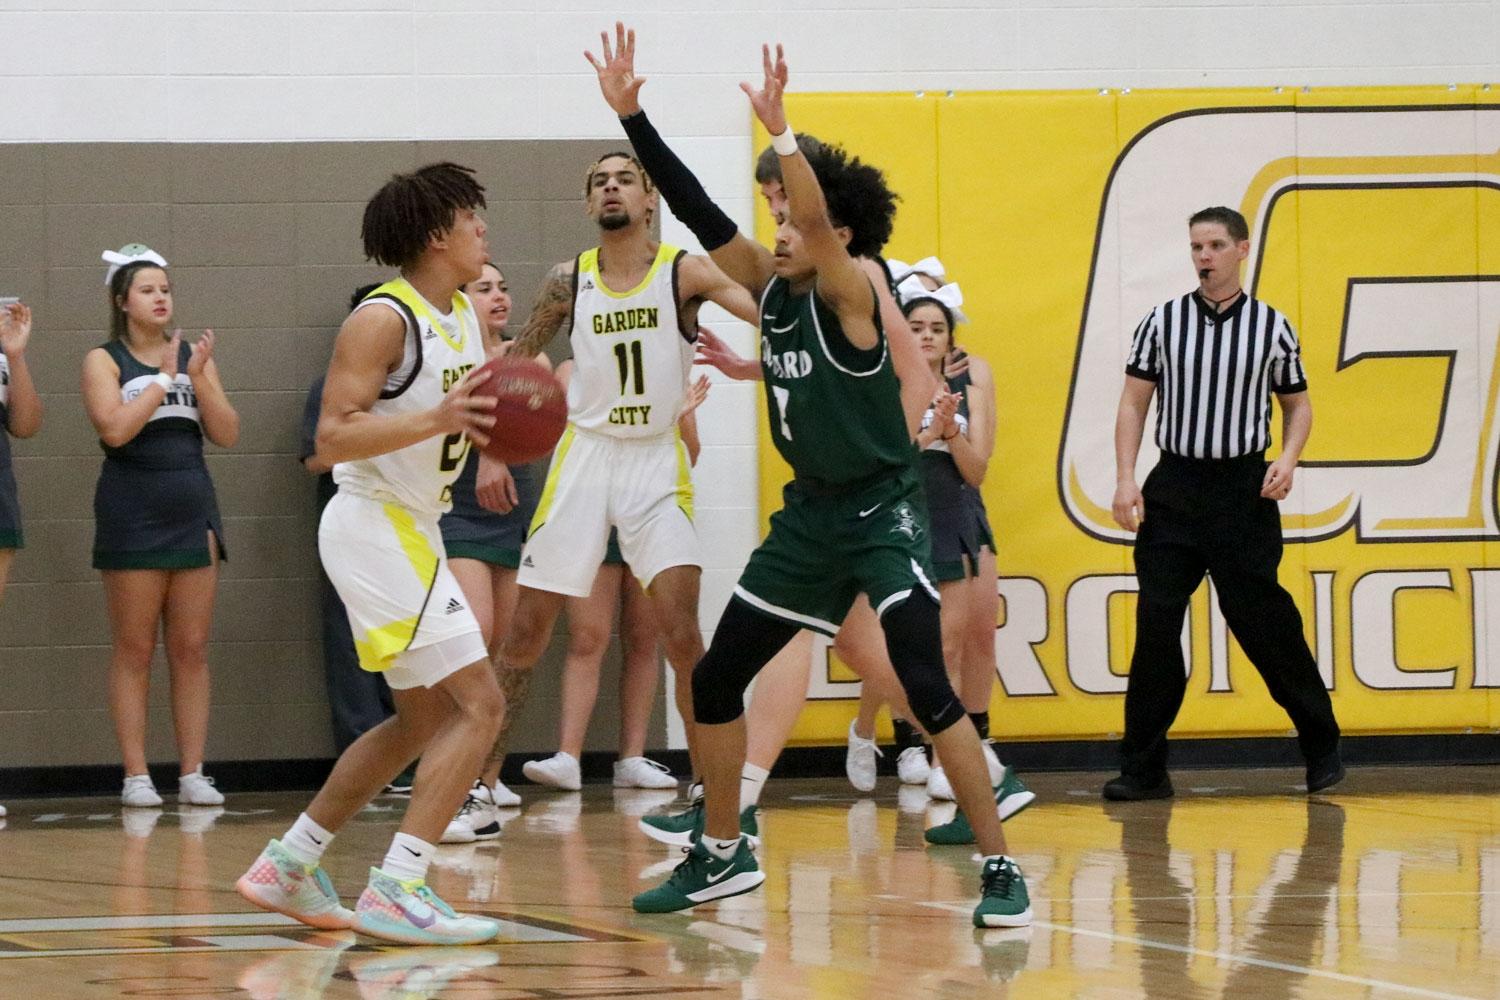 The Seward Saints lost to Pratt Community College on Feb. 8 with a score of 73-84.